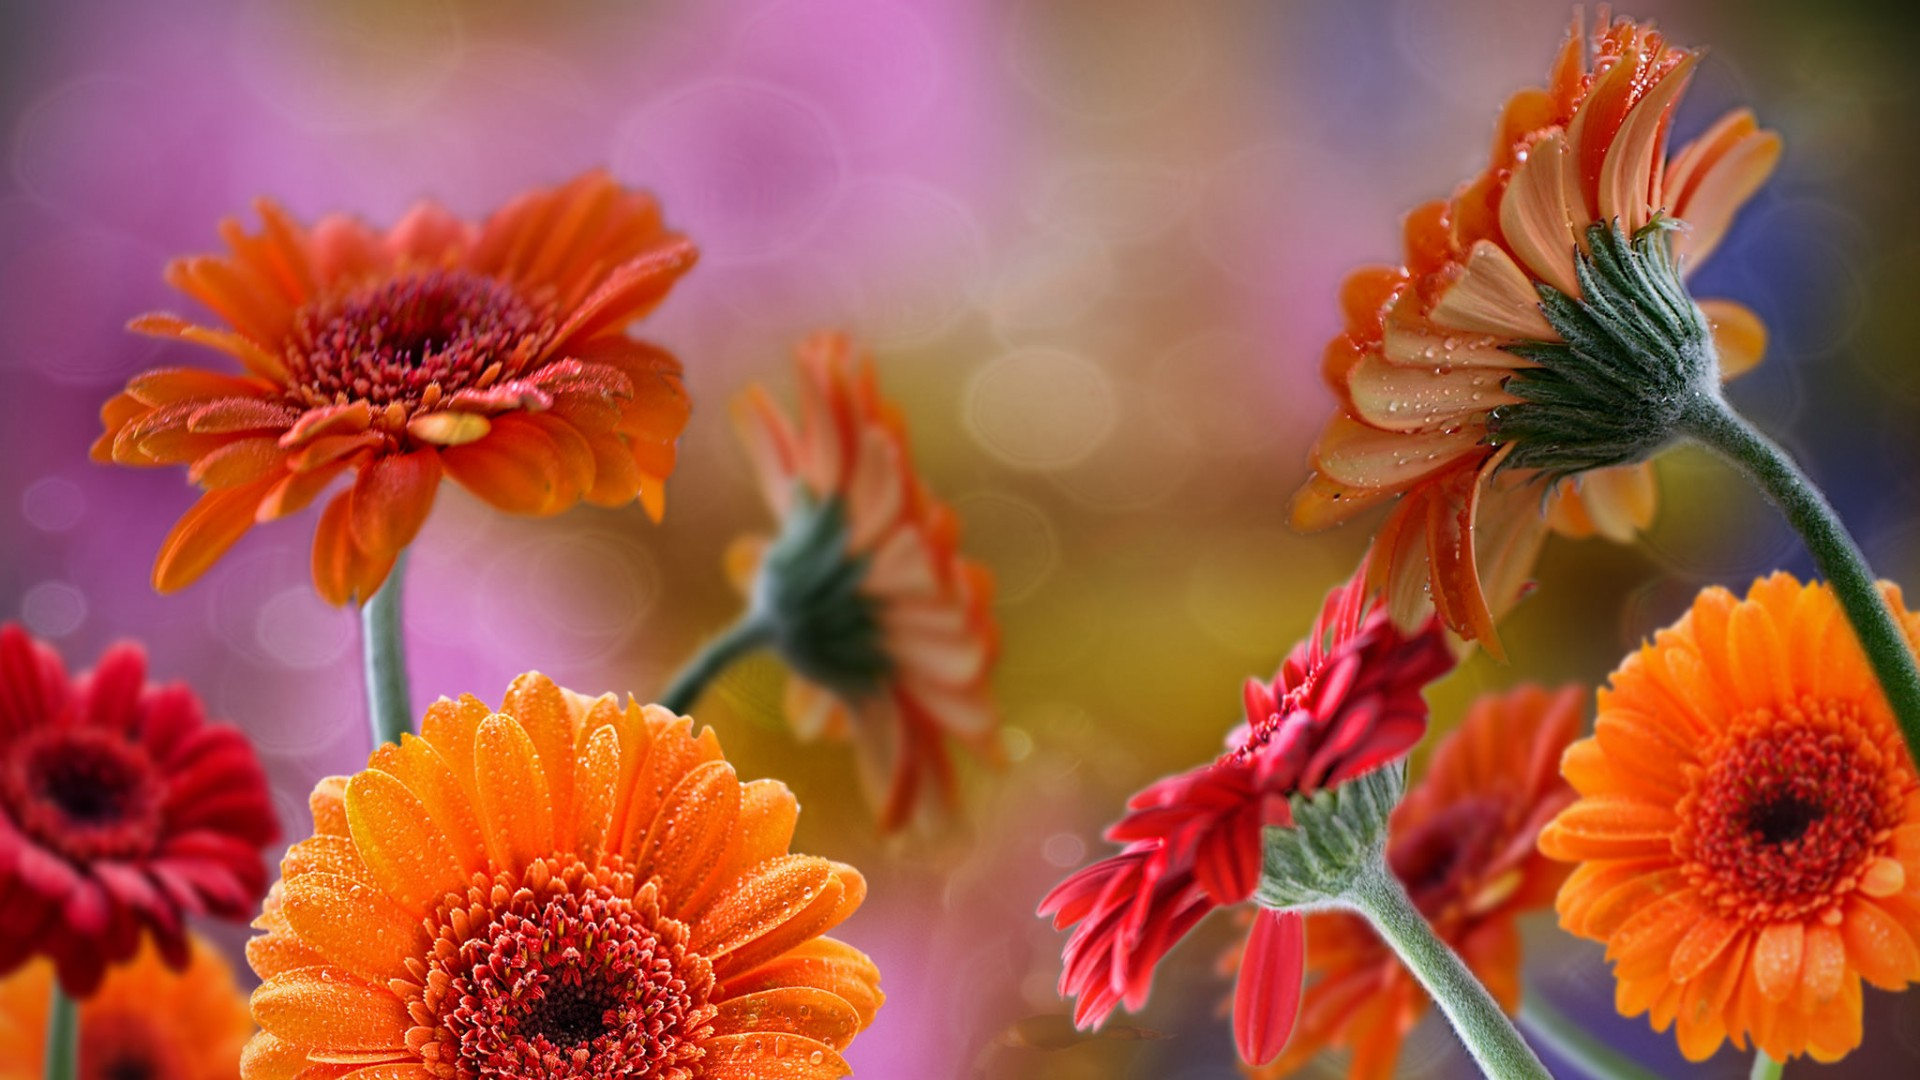 Gerbera Wallpapers, Pictures, Images